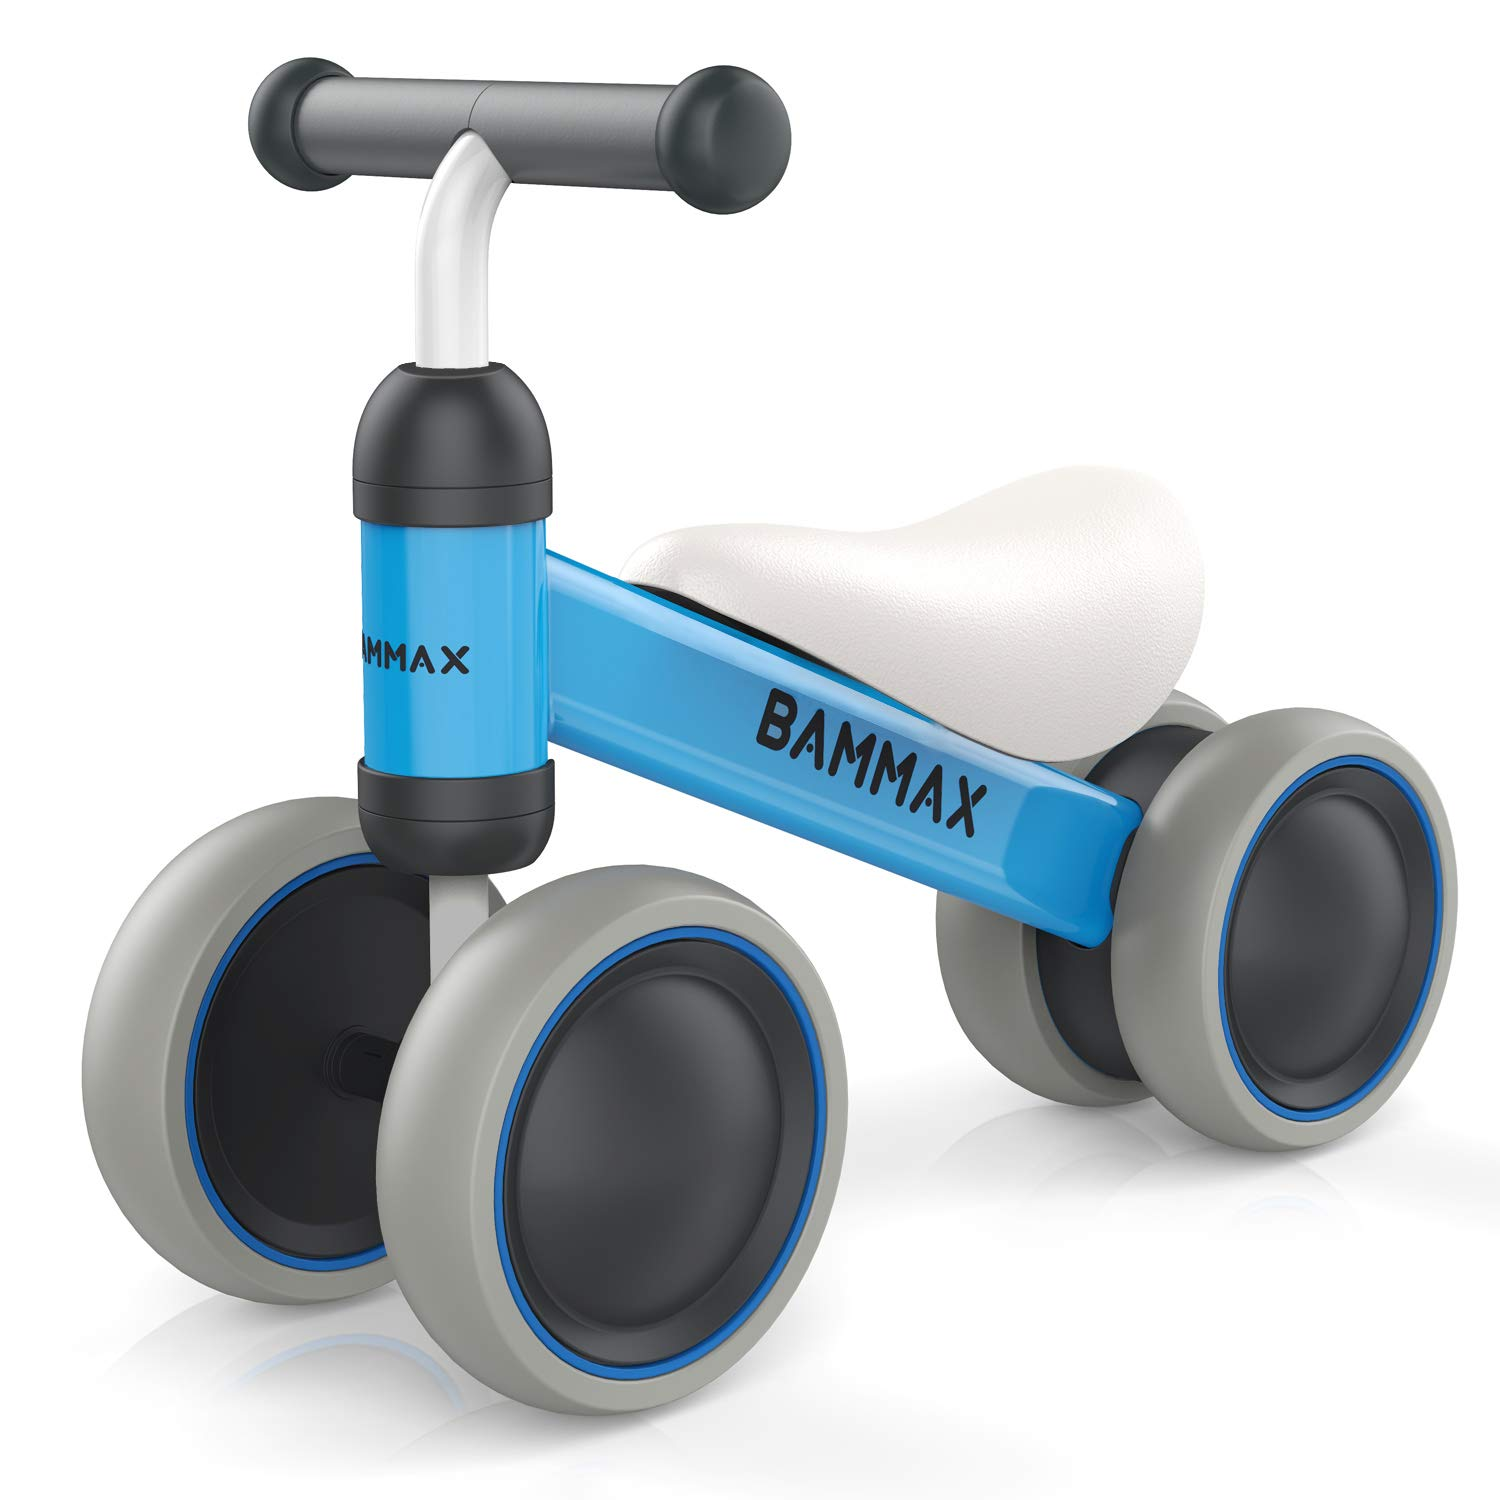 Bammax Baby Balance Bikes, Baby Bike for 1 Year Old Baby Bicycle Children Walker Toddler Baby Ride Toys for 9 Months - 24 Months Boys Girls No Pedal 4 Wheels Baby First Birthday Bike, Blue by Bammax